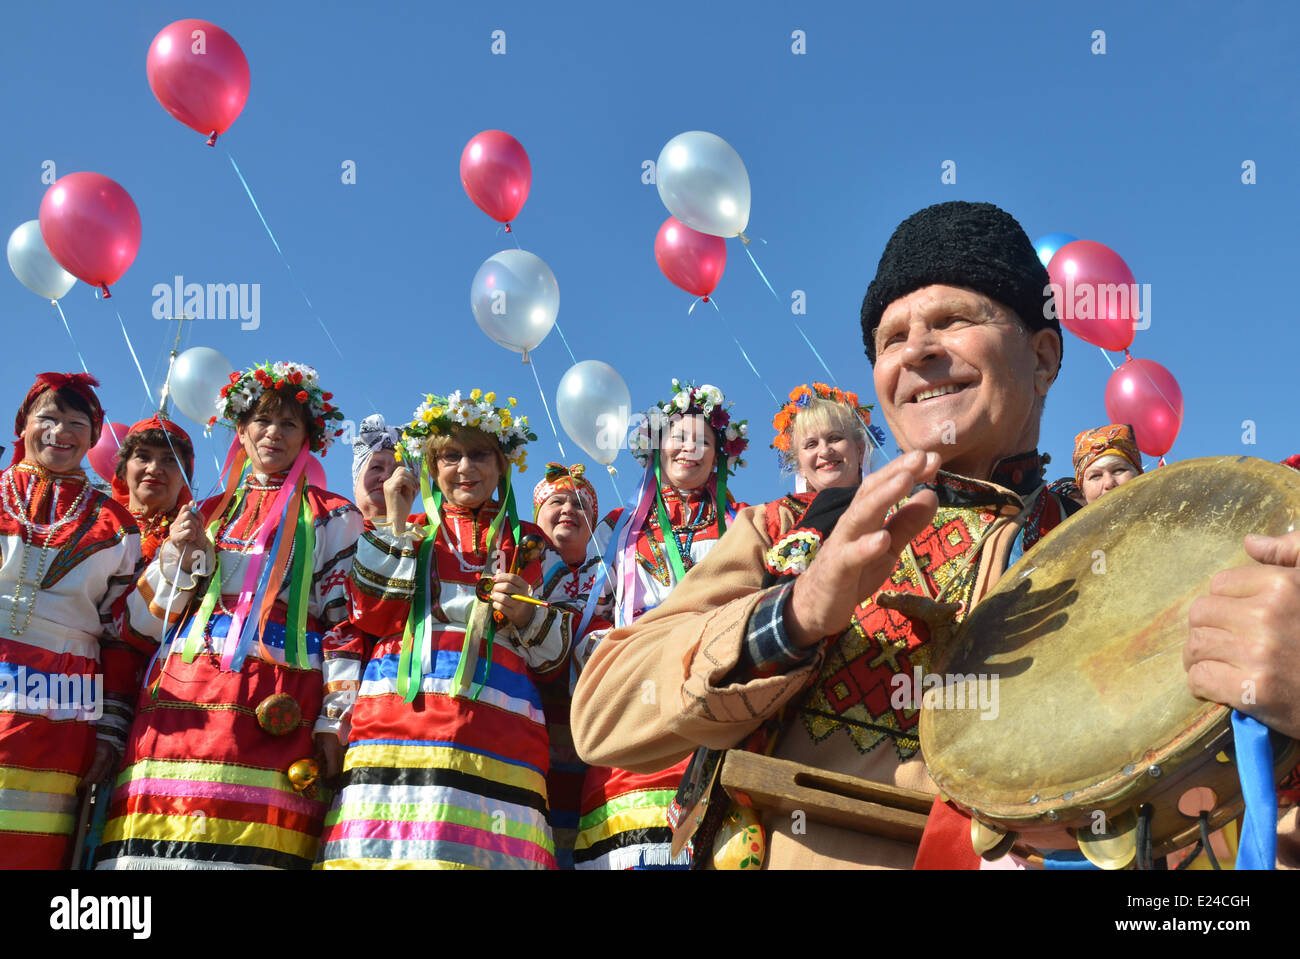 Ukrainian folk costumes - Stock Image